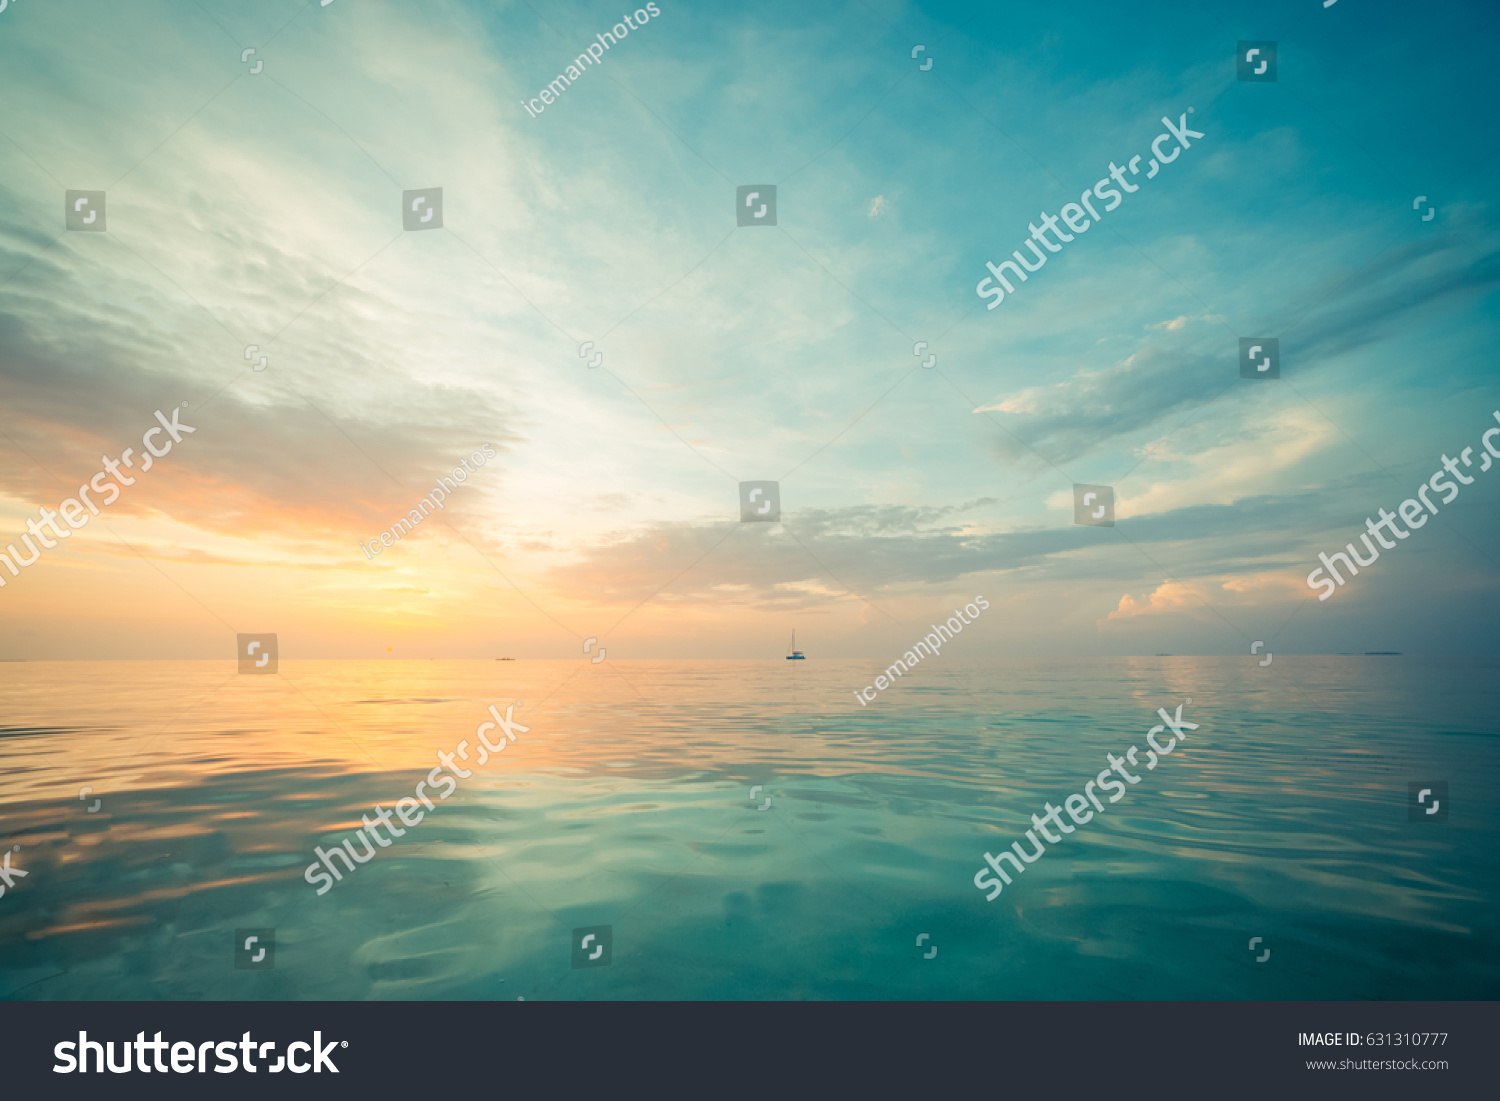 Relaxing seascape with wide horizon of the sky and the sea #631310777